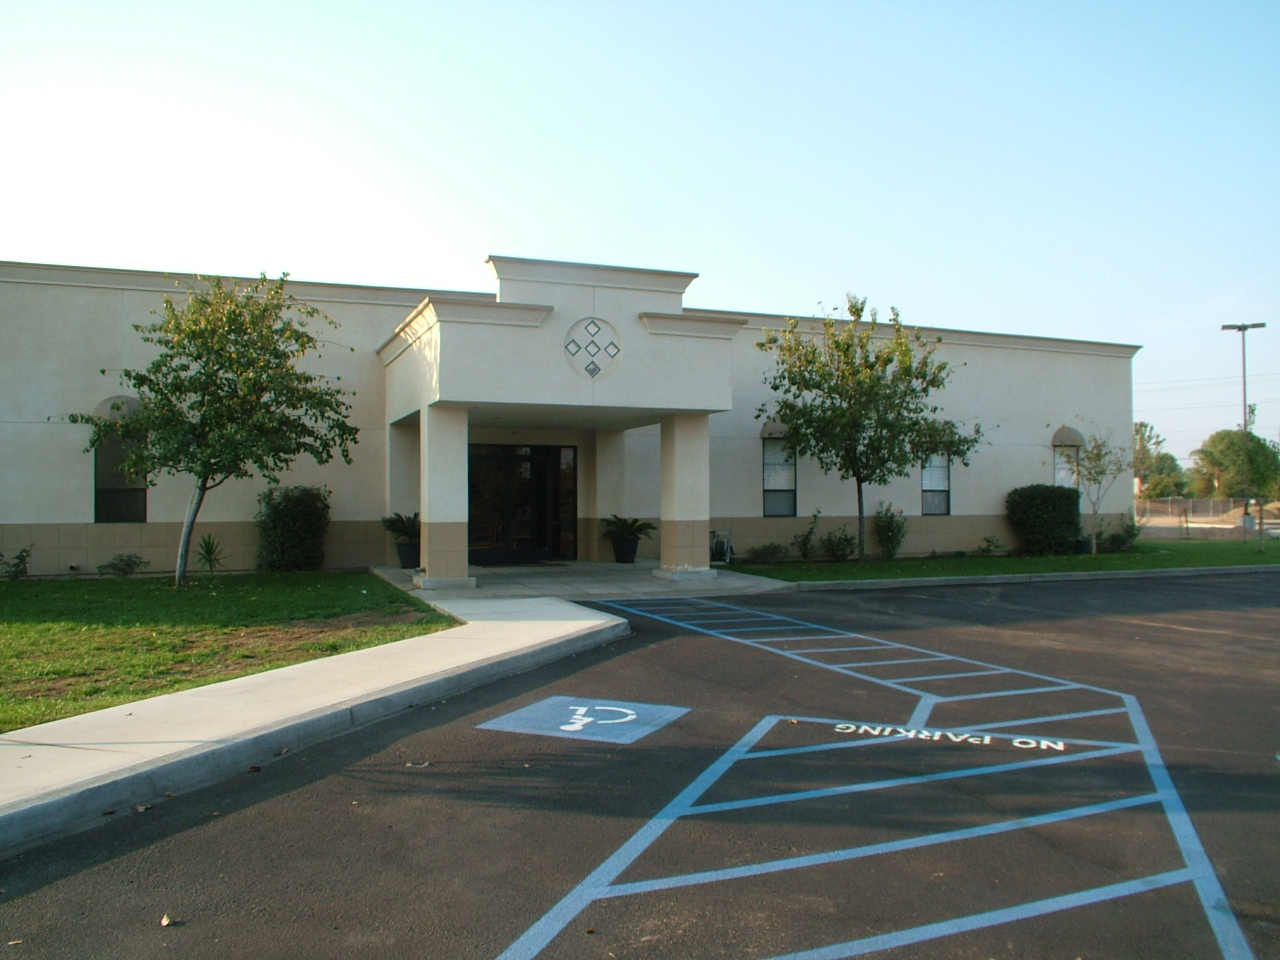 10-23-09websitephotos 001